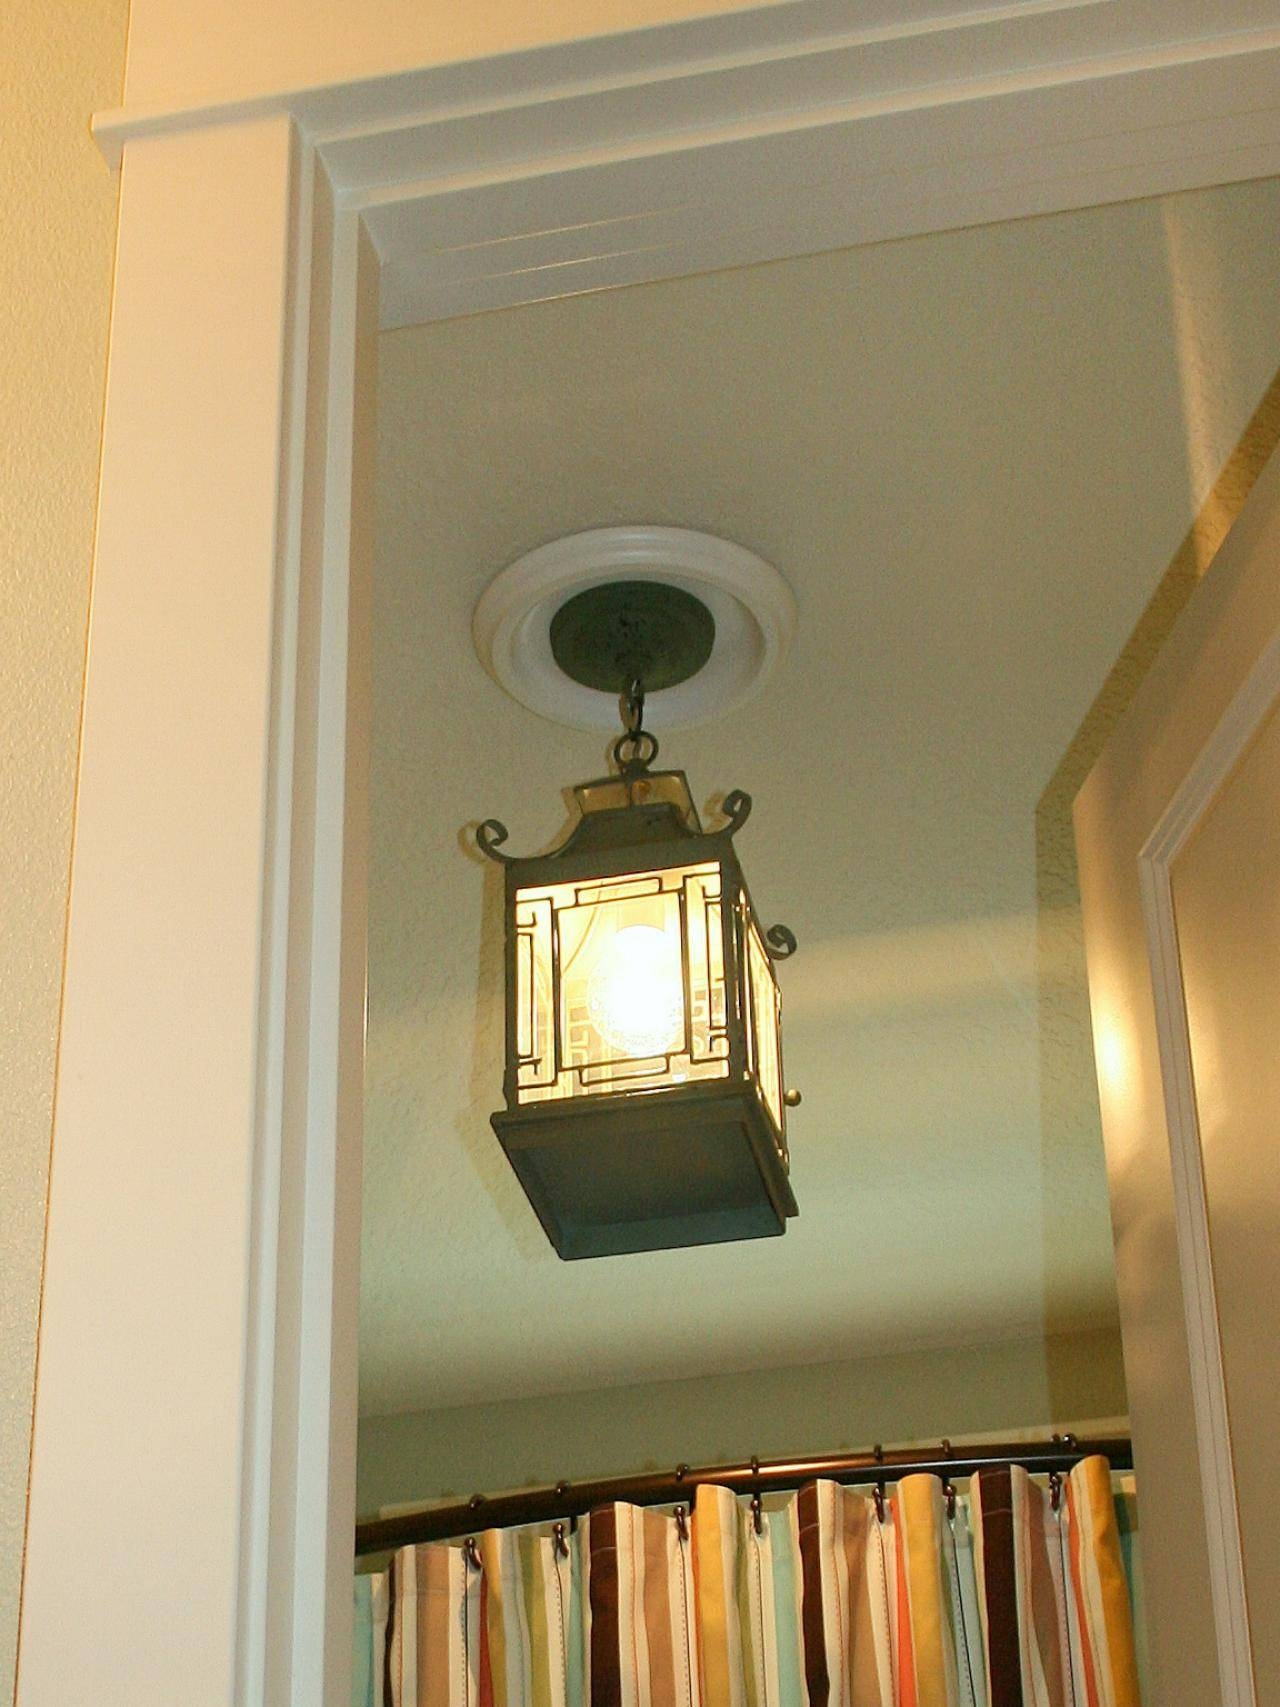 Ideal Setting Hanging Front Porch Light Fixtures | Karenefoley pertaining to Pendant Lights Cover Plate (Image 11 of 15)